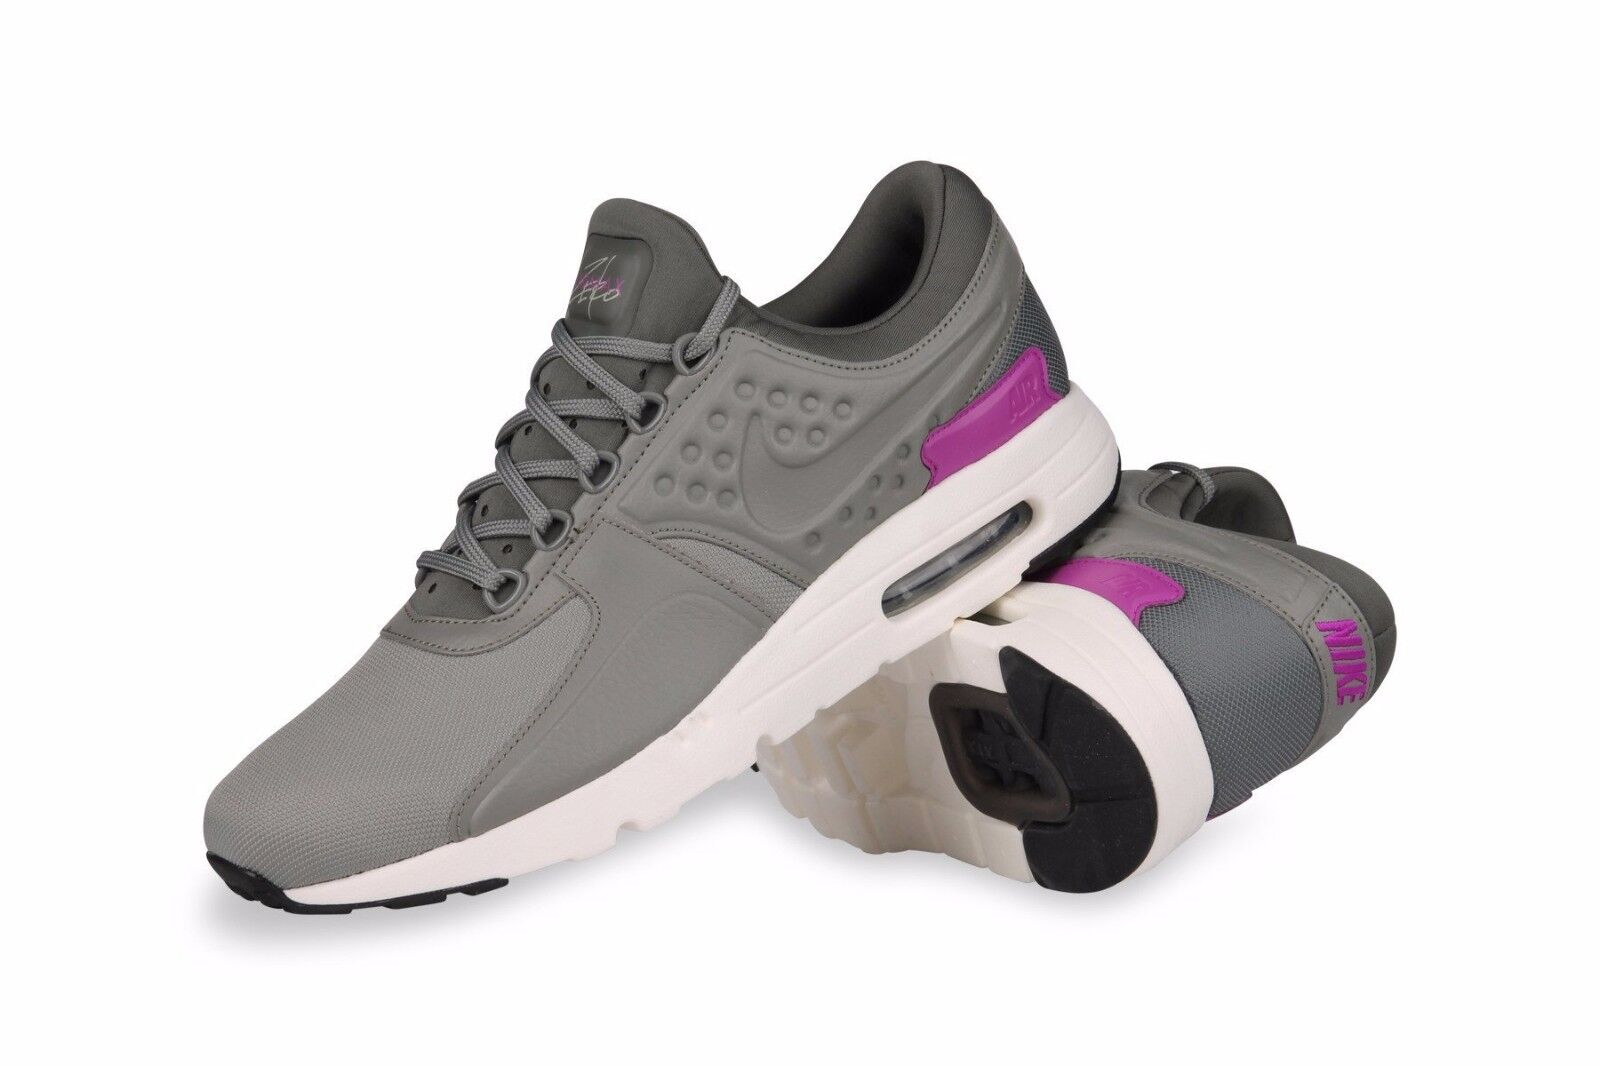 feaec7f53ab Nike Air Max Zero Premium Running Shoes Mens Size 11 ID 881982-004 ...